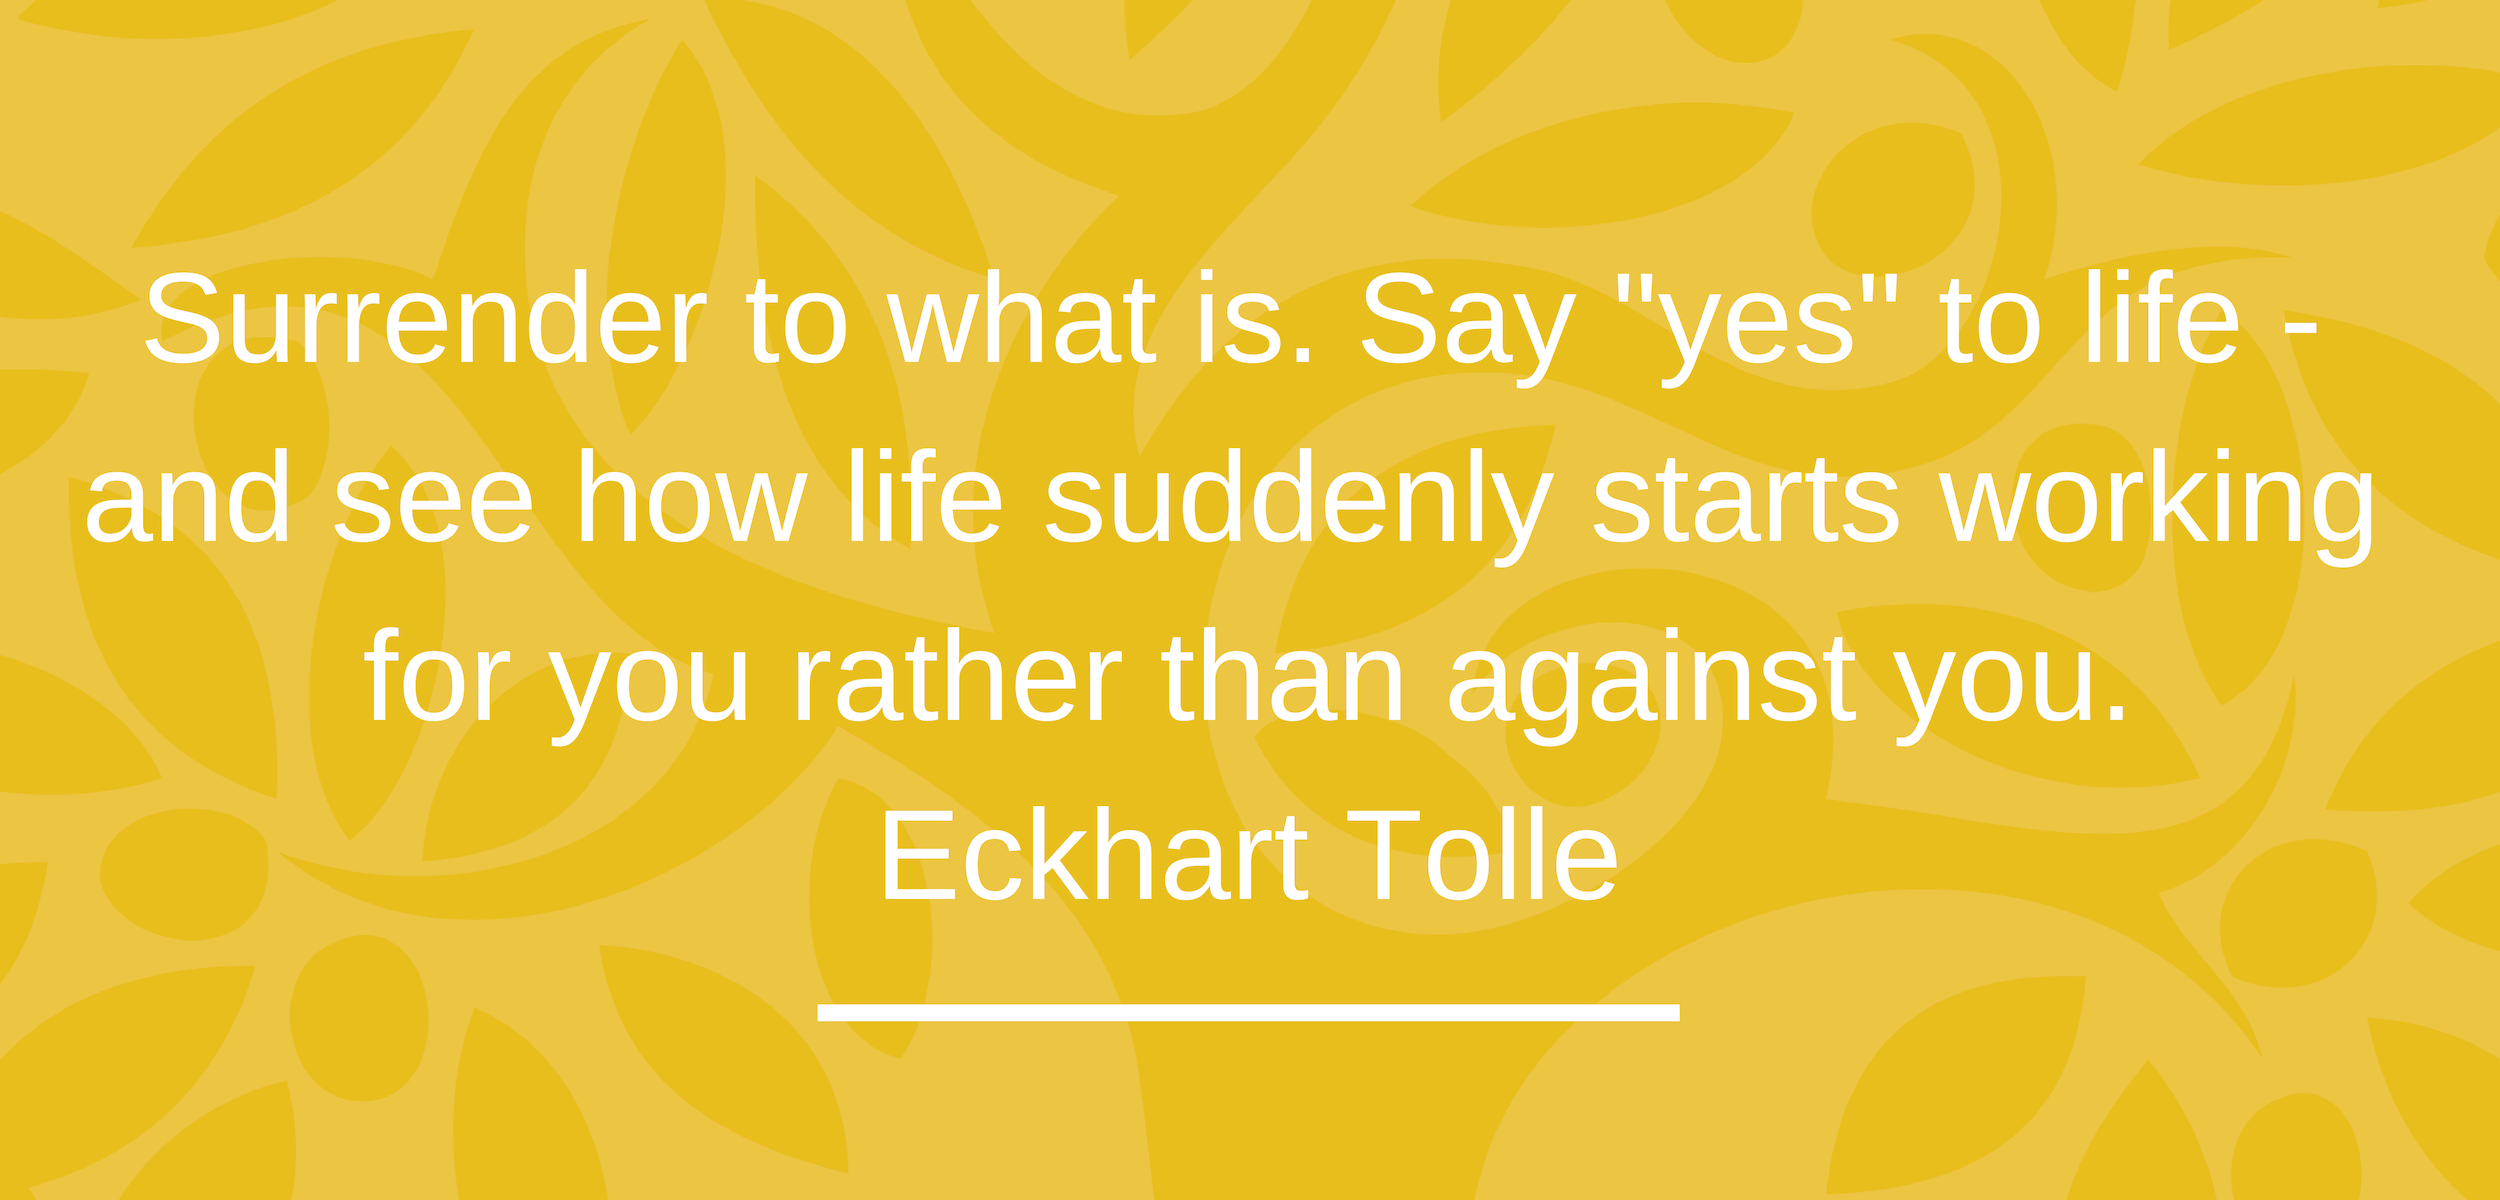 Eckhart Tolle (1).png